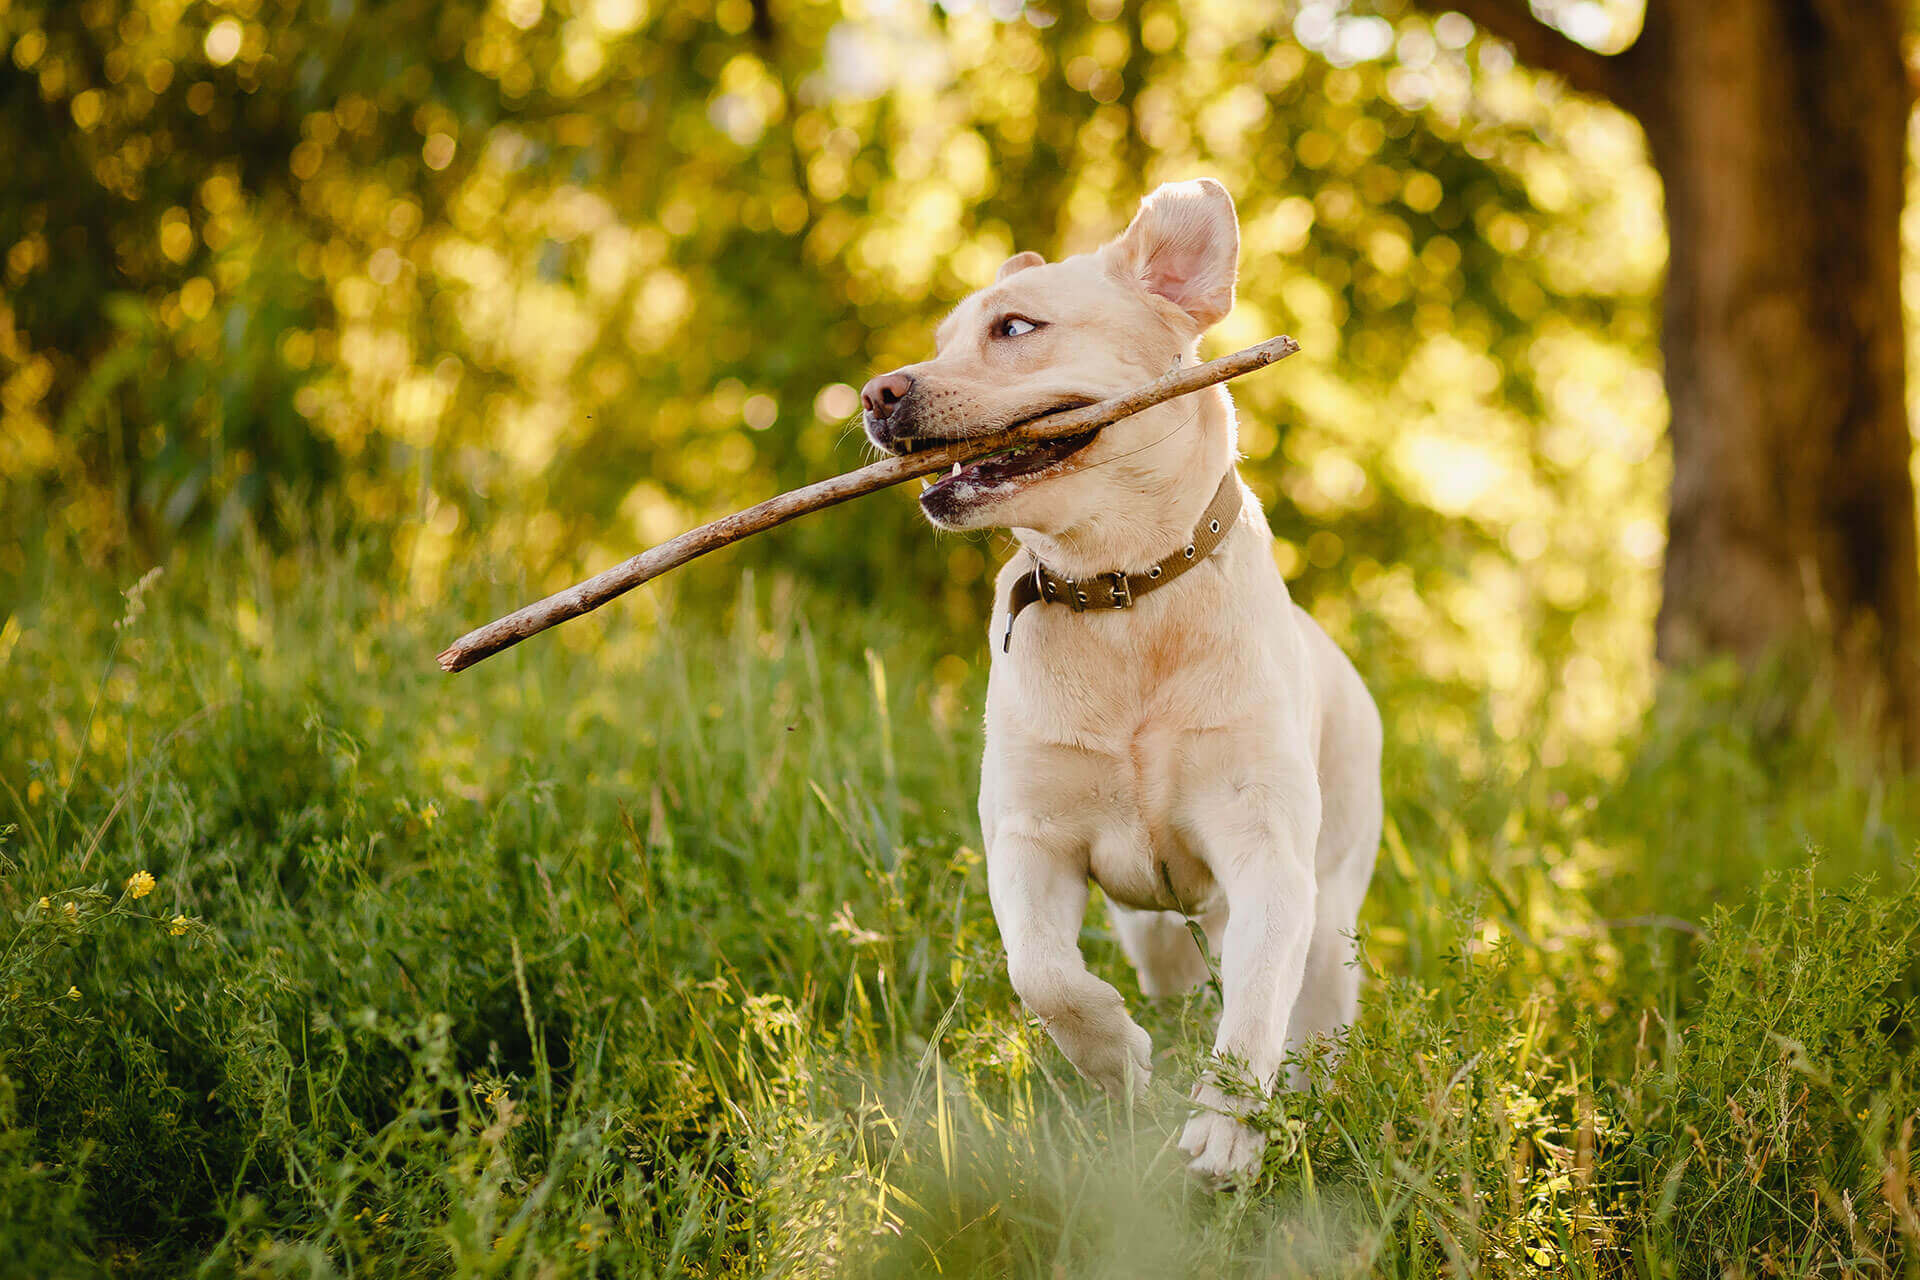 How to increase your dog's motivation? Here are 4 ideas that work!